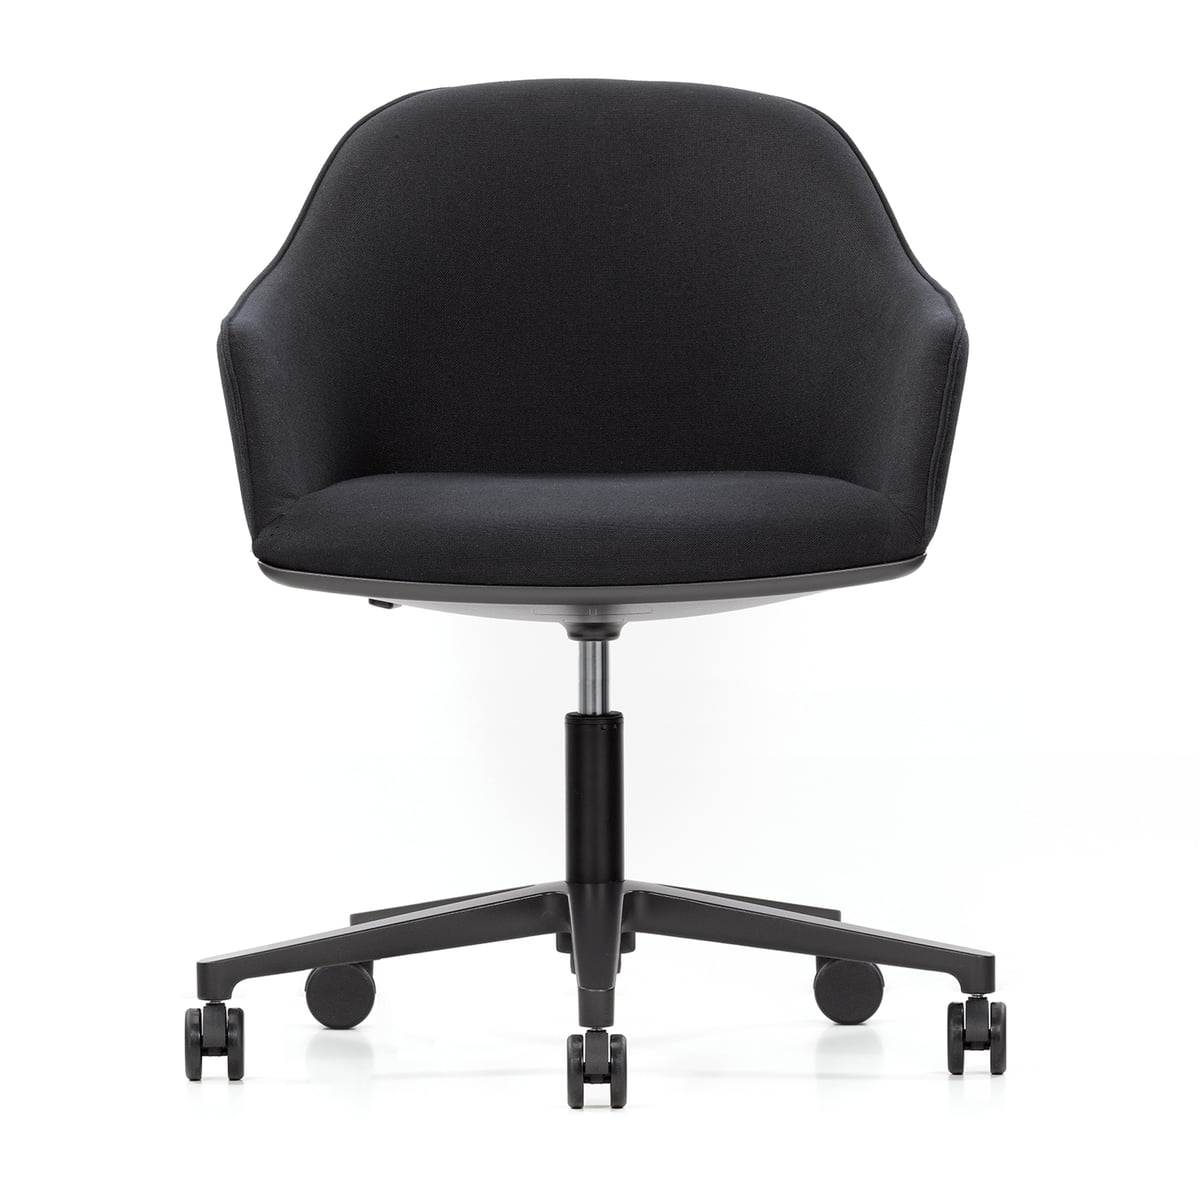 buy the vitra softshell chair with wheels. Black Bedroom Furniture Sets. Home Design Ideas